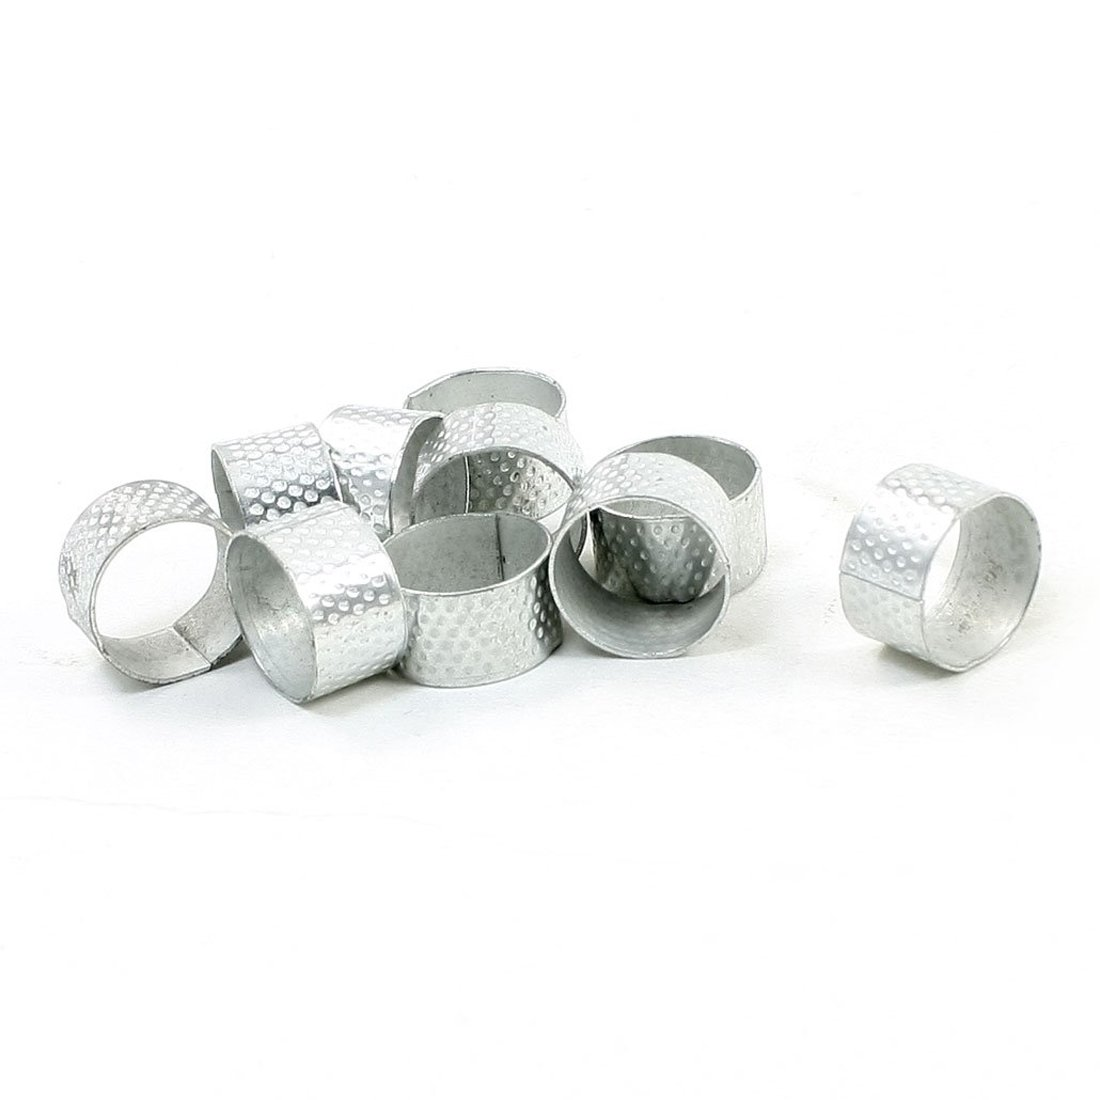 Silver Tone Tailors Sewing Texturing Reeded Round Thimble 10 Pcs SODIAL R